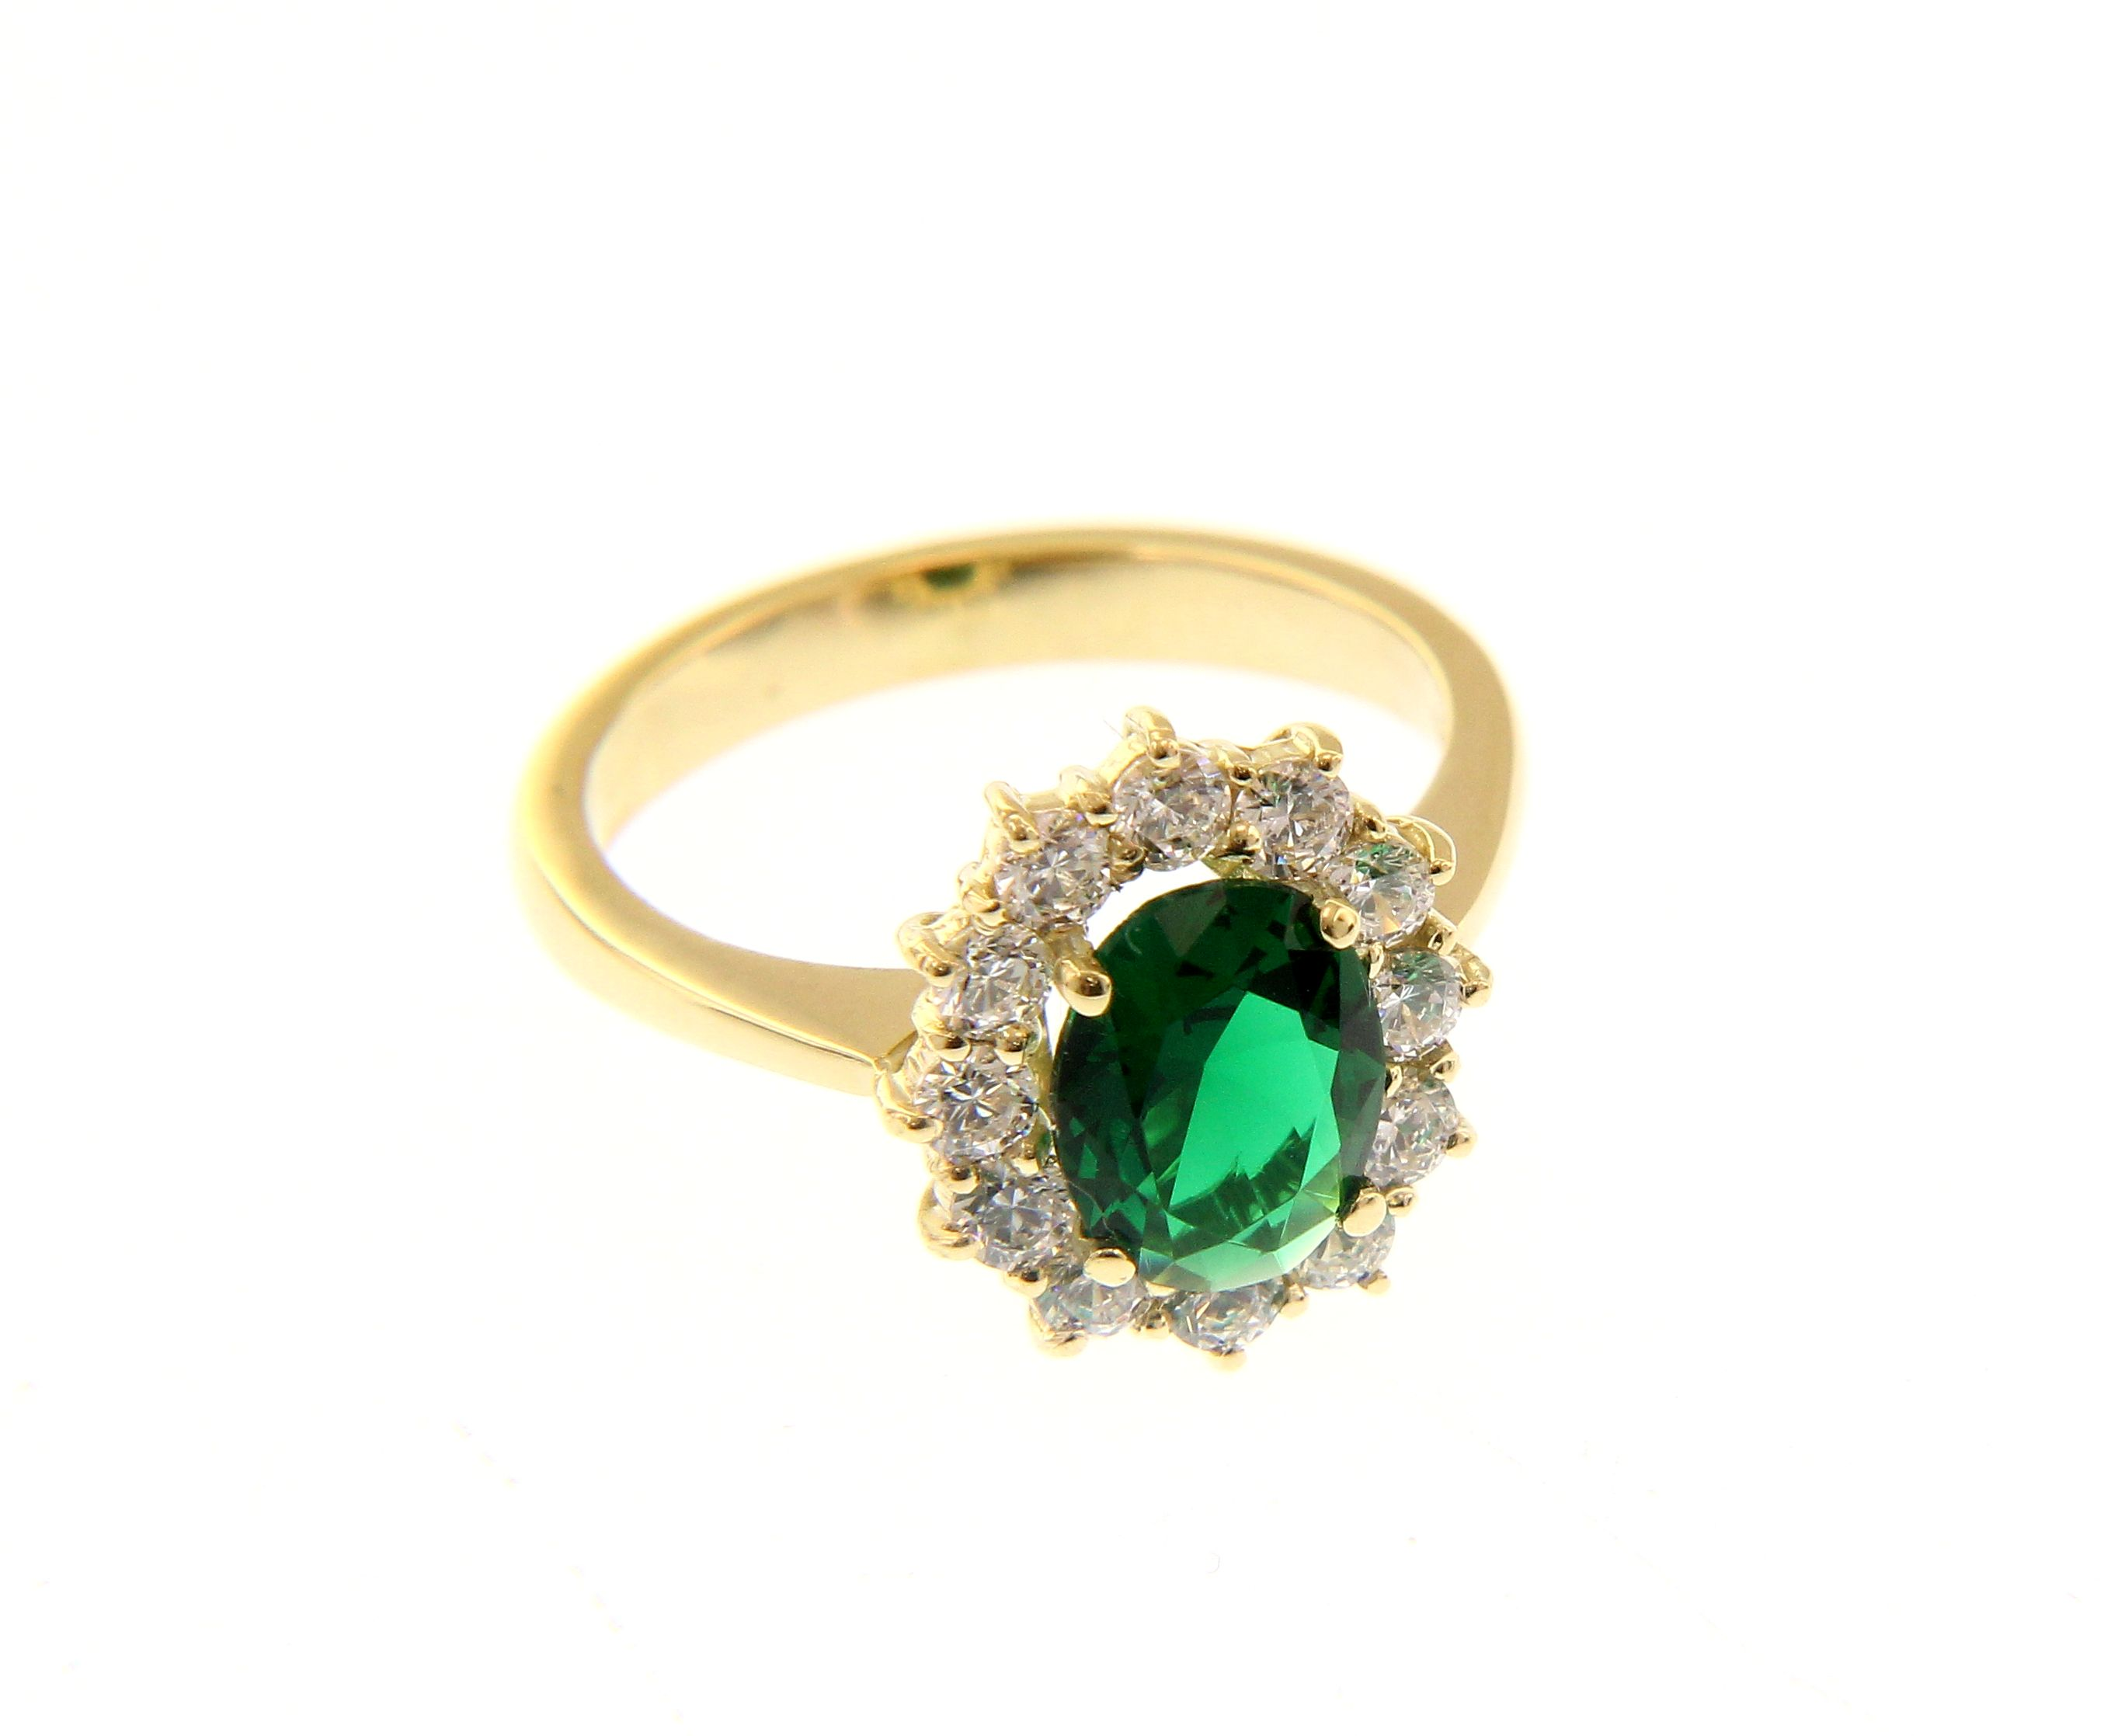 Beautiful 18K yellow gold ring with brilliant cubic zirconia